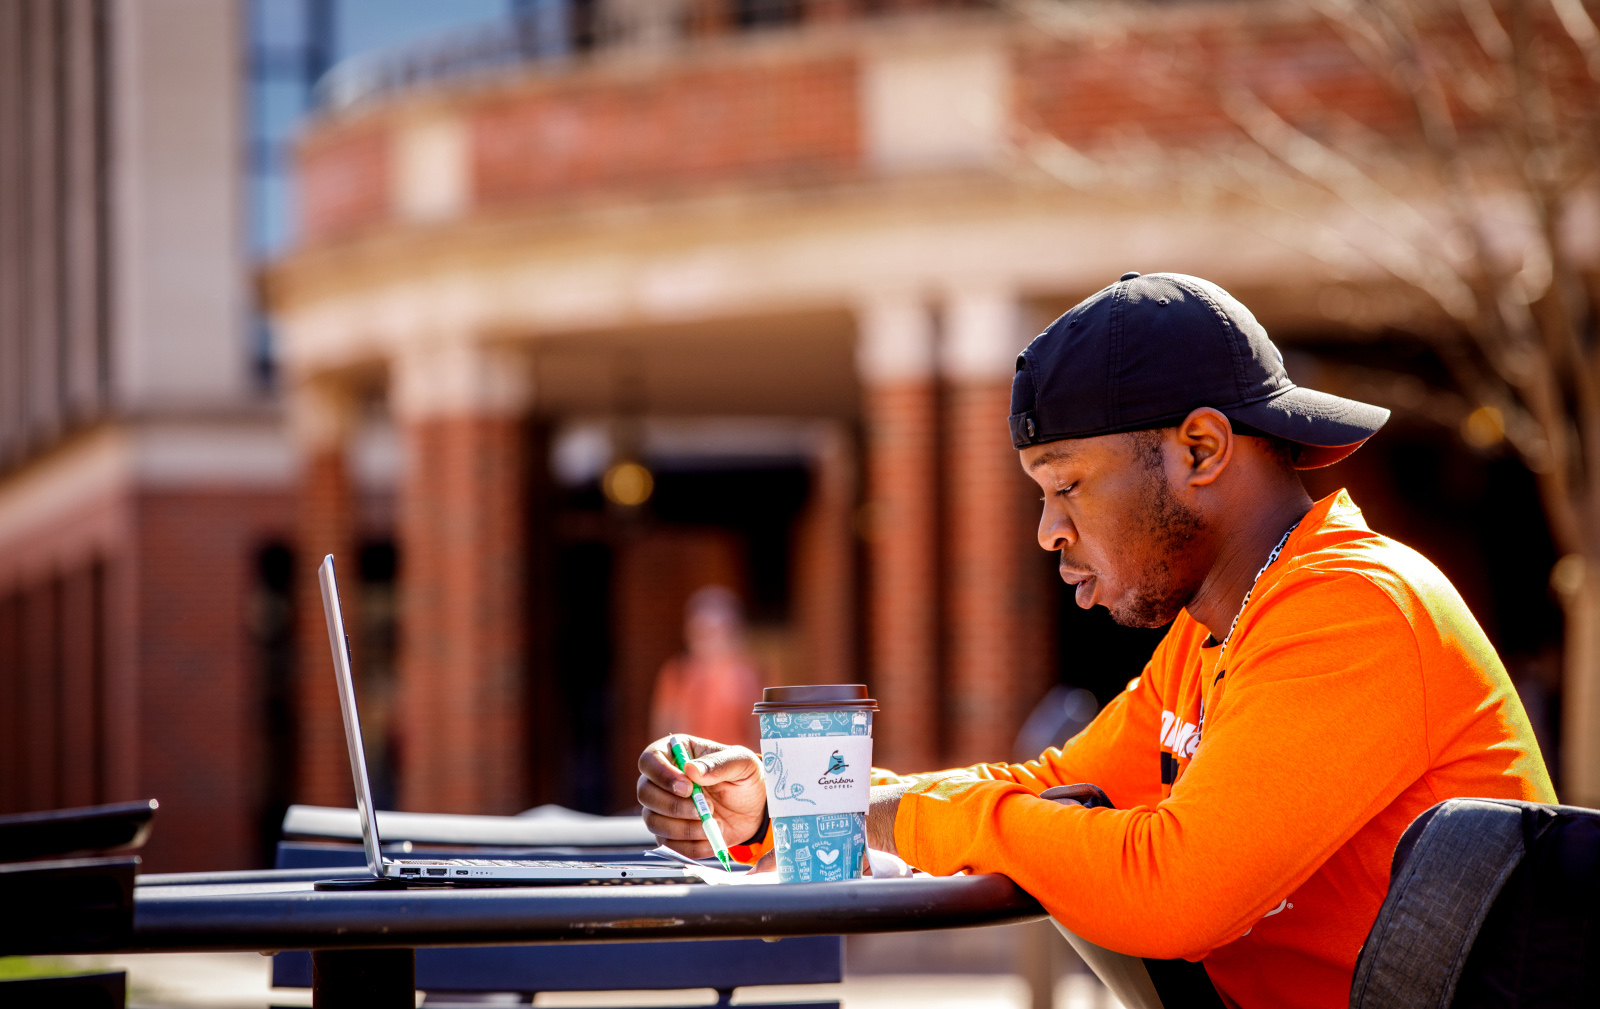 Student on their laptop studying in the Student Union courtyard on the OSU campus in Stillwater.